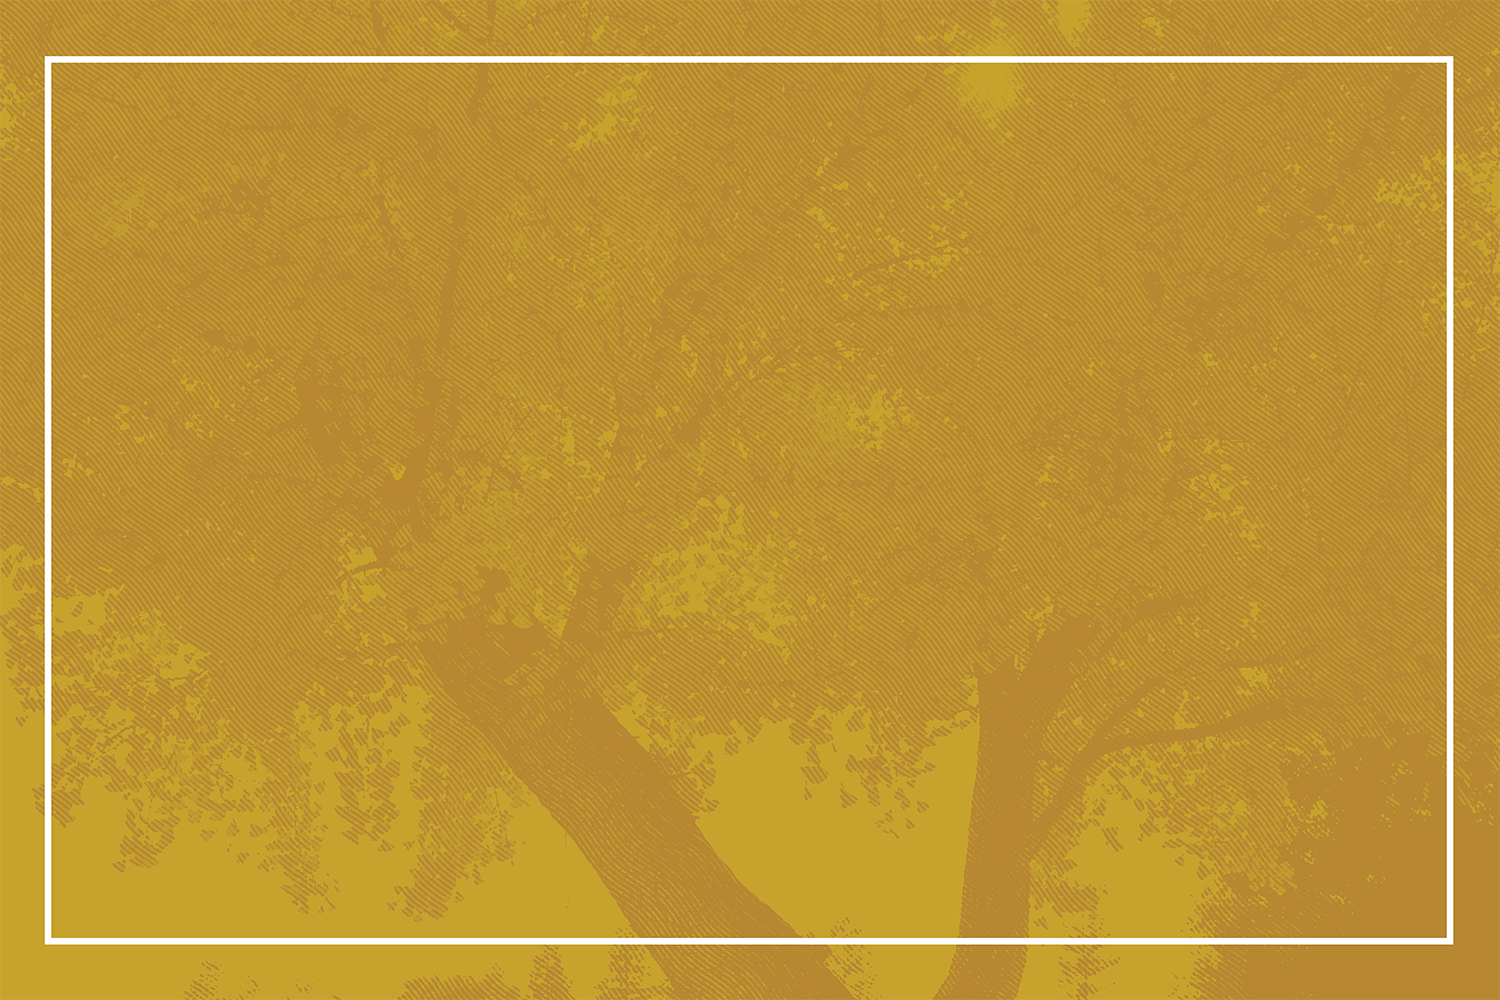 Trees on yellow background.